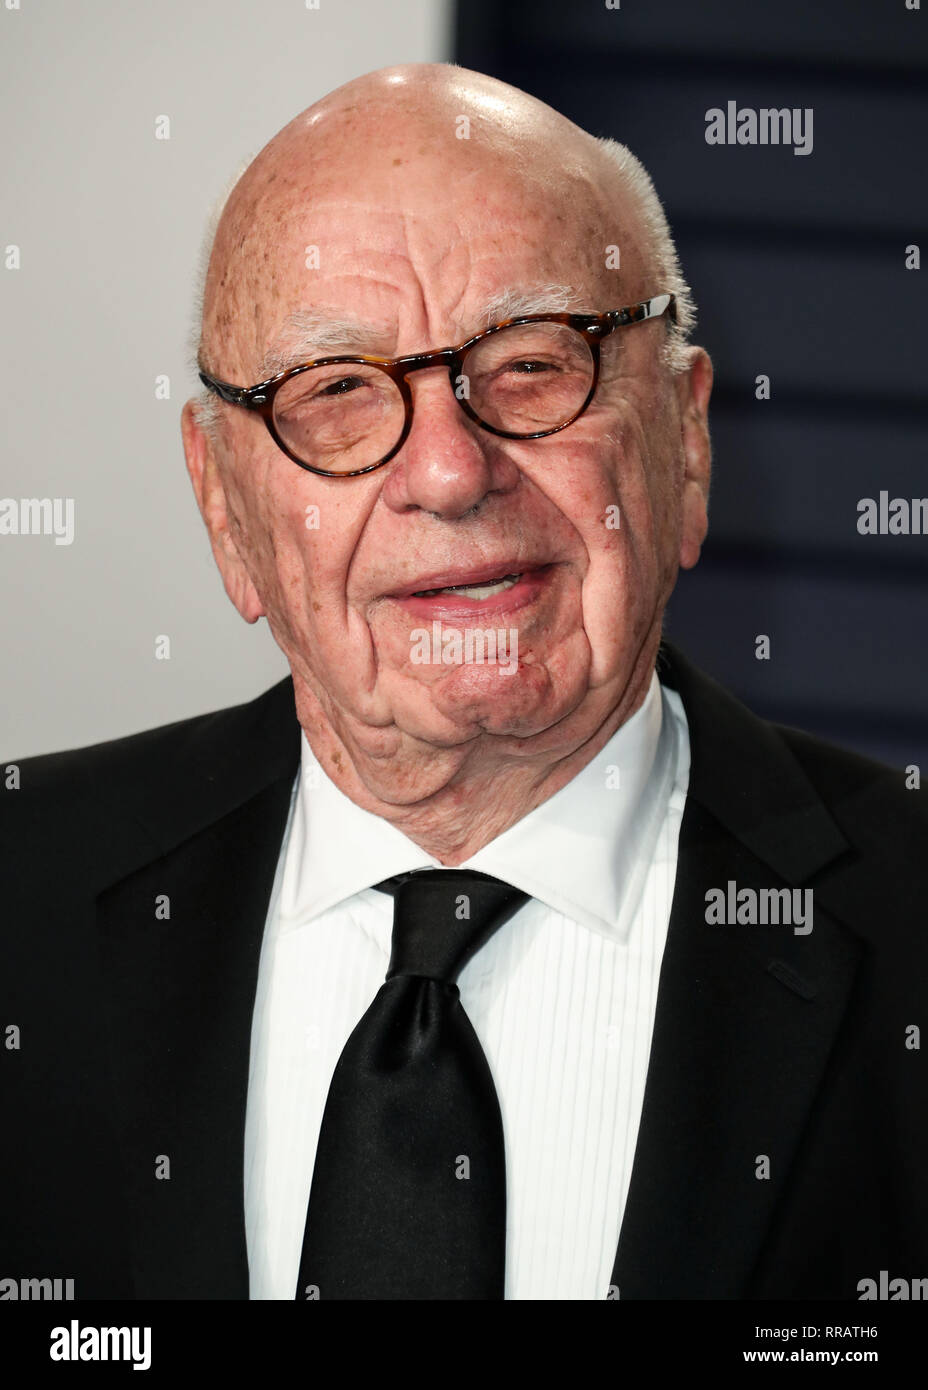 BEVERLY HILLS, LOS ANGELES, CA, USA - FEBRUARY 24: Rupert Murdoch arrives at the 2019 Vanity Fair Oscar Party held at the Wallis Annenberg Center for the Performing Arts on February 24, 2019 in Beverly Hills, Los Angeles, California, United States. (Photo by Xavier Collin/Image Press Agency) - Stock Image